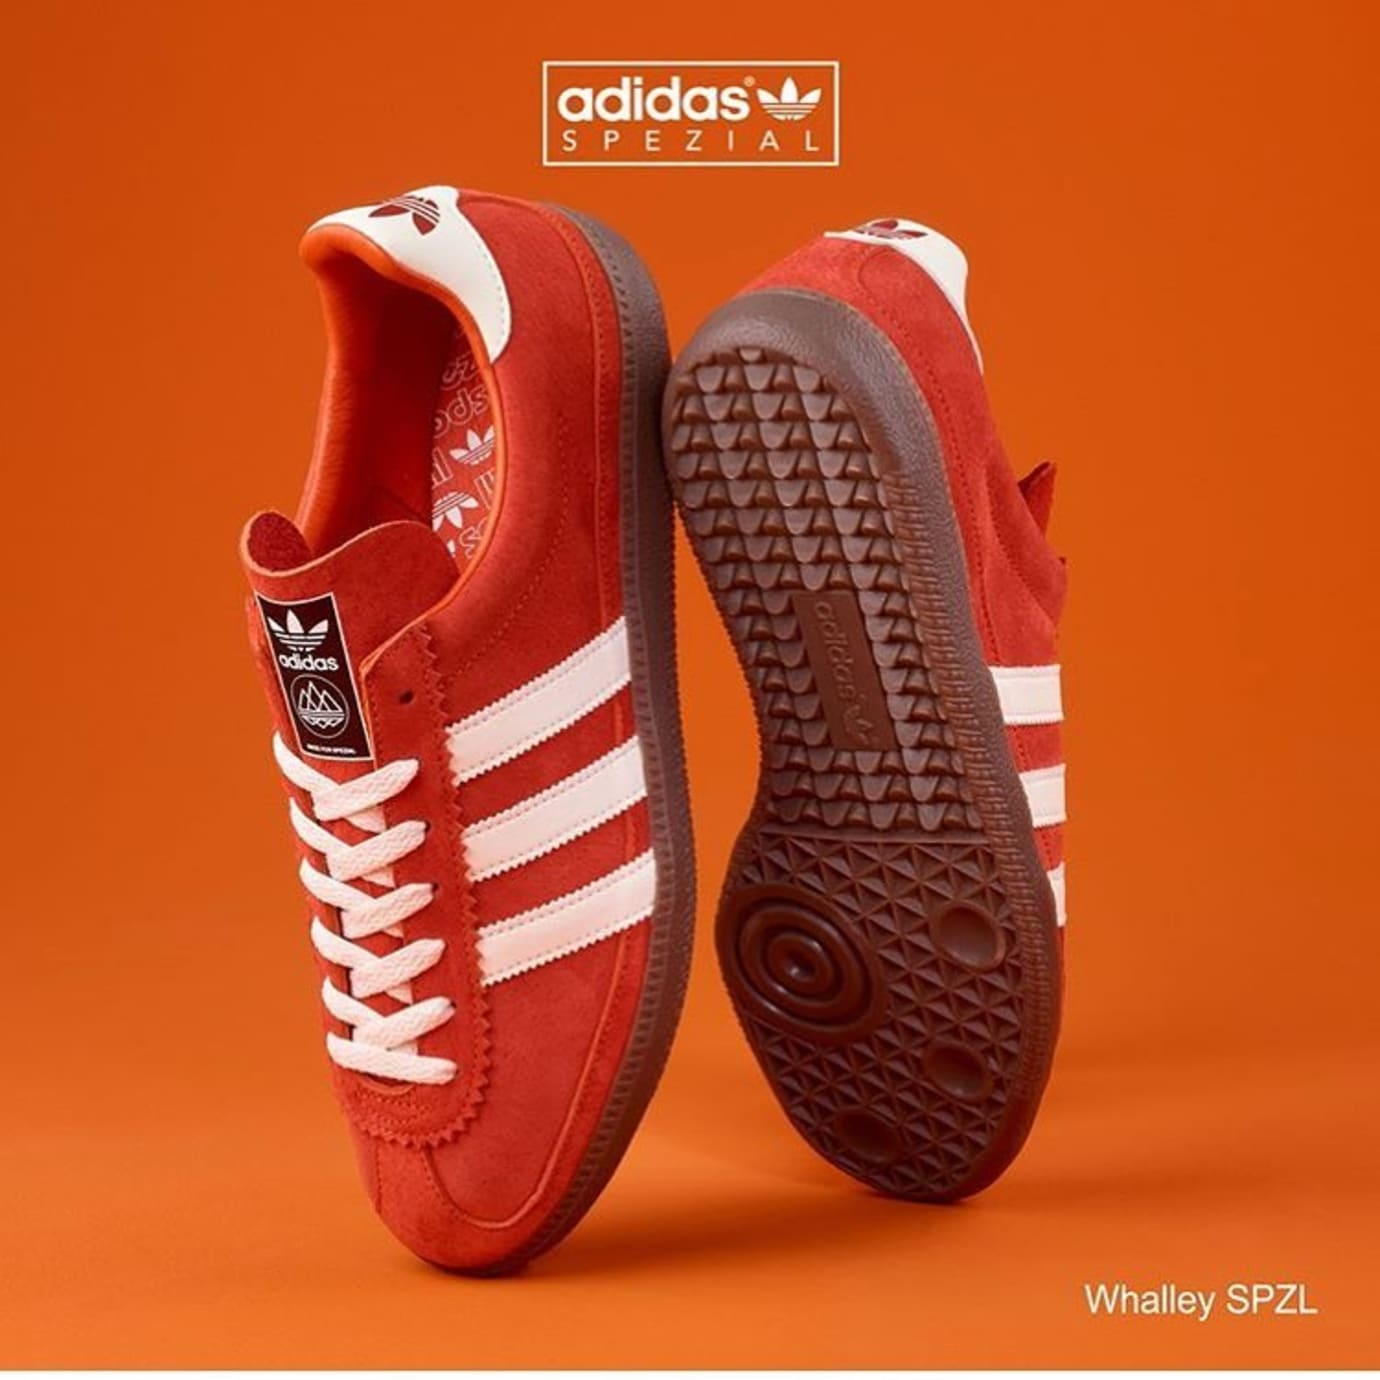 Adidas Spezial Spring/Summer 2019 Whalley